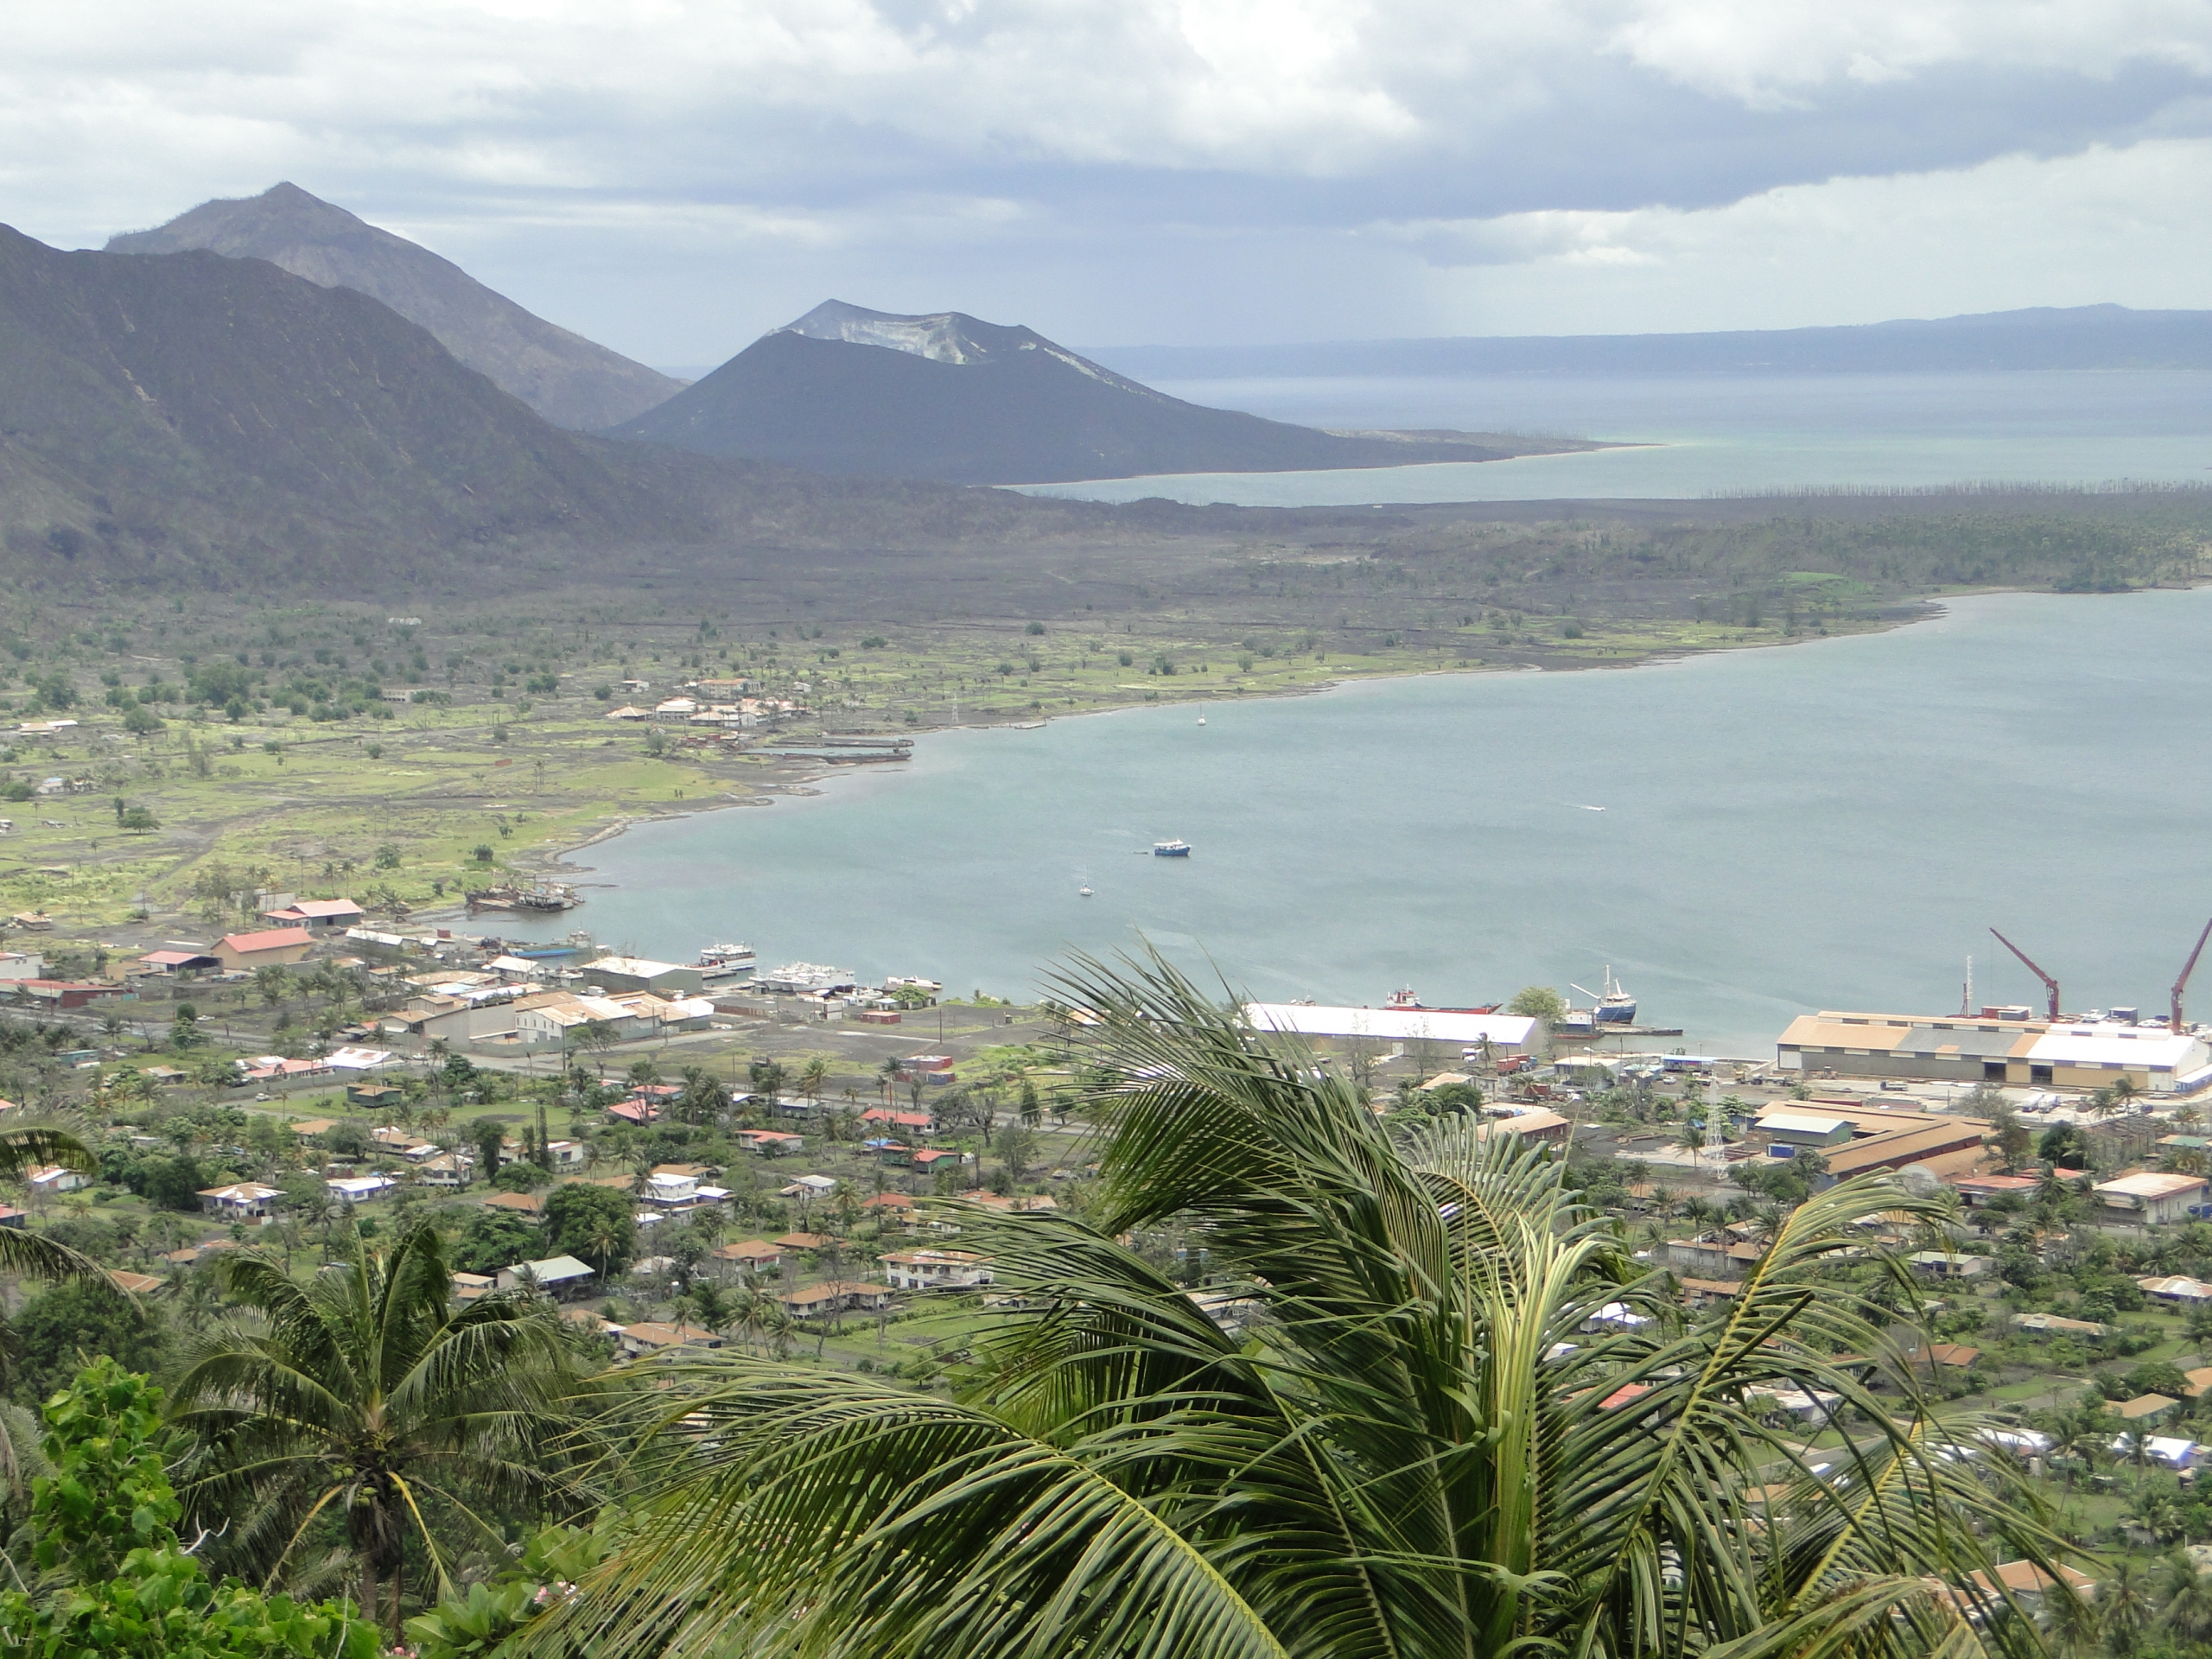 Rabaul Harbour & Volcanoes